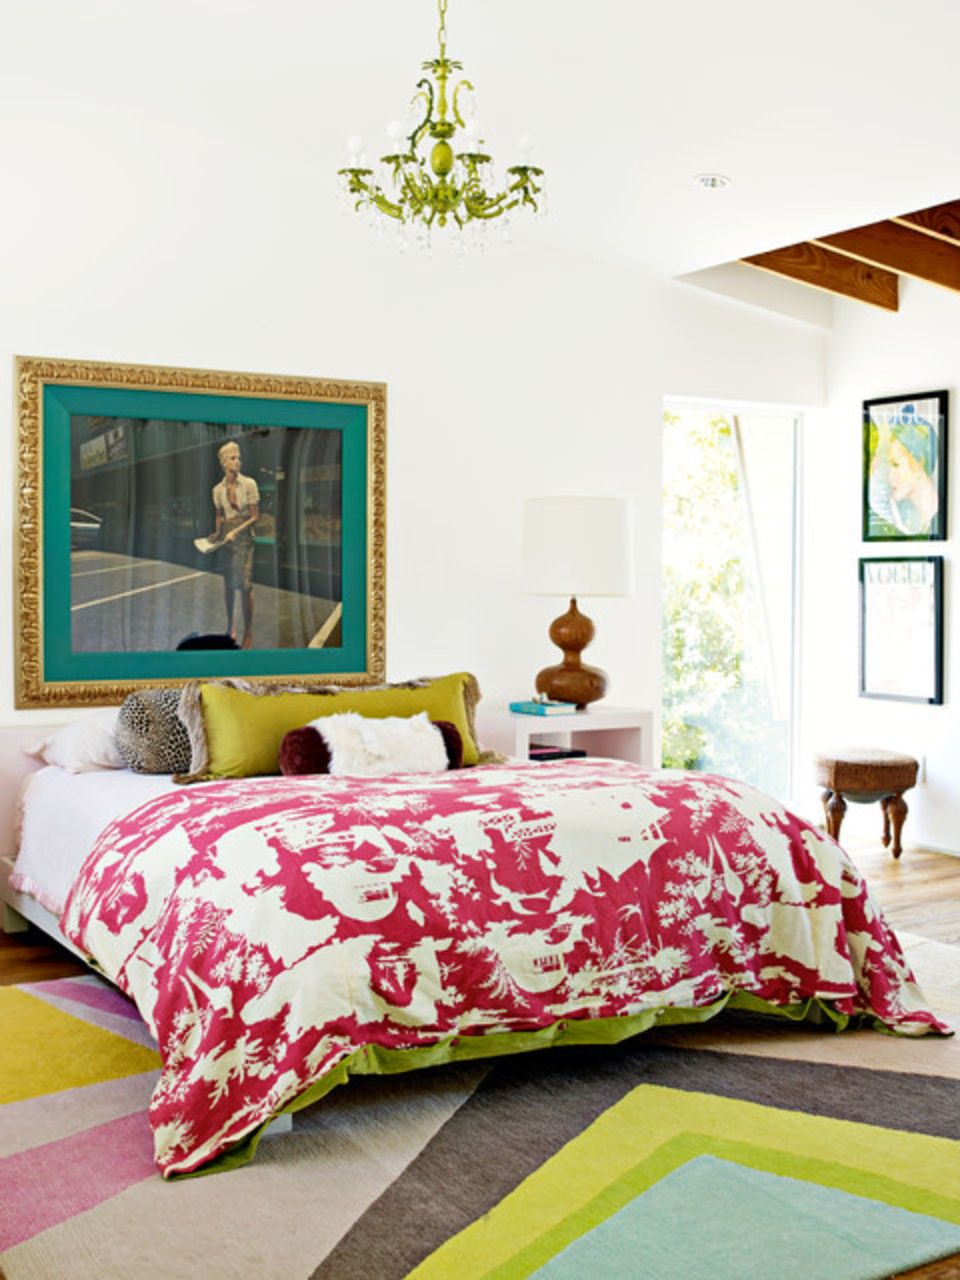 Make way for eclectic home décor epic interiors pinterest